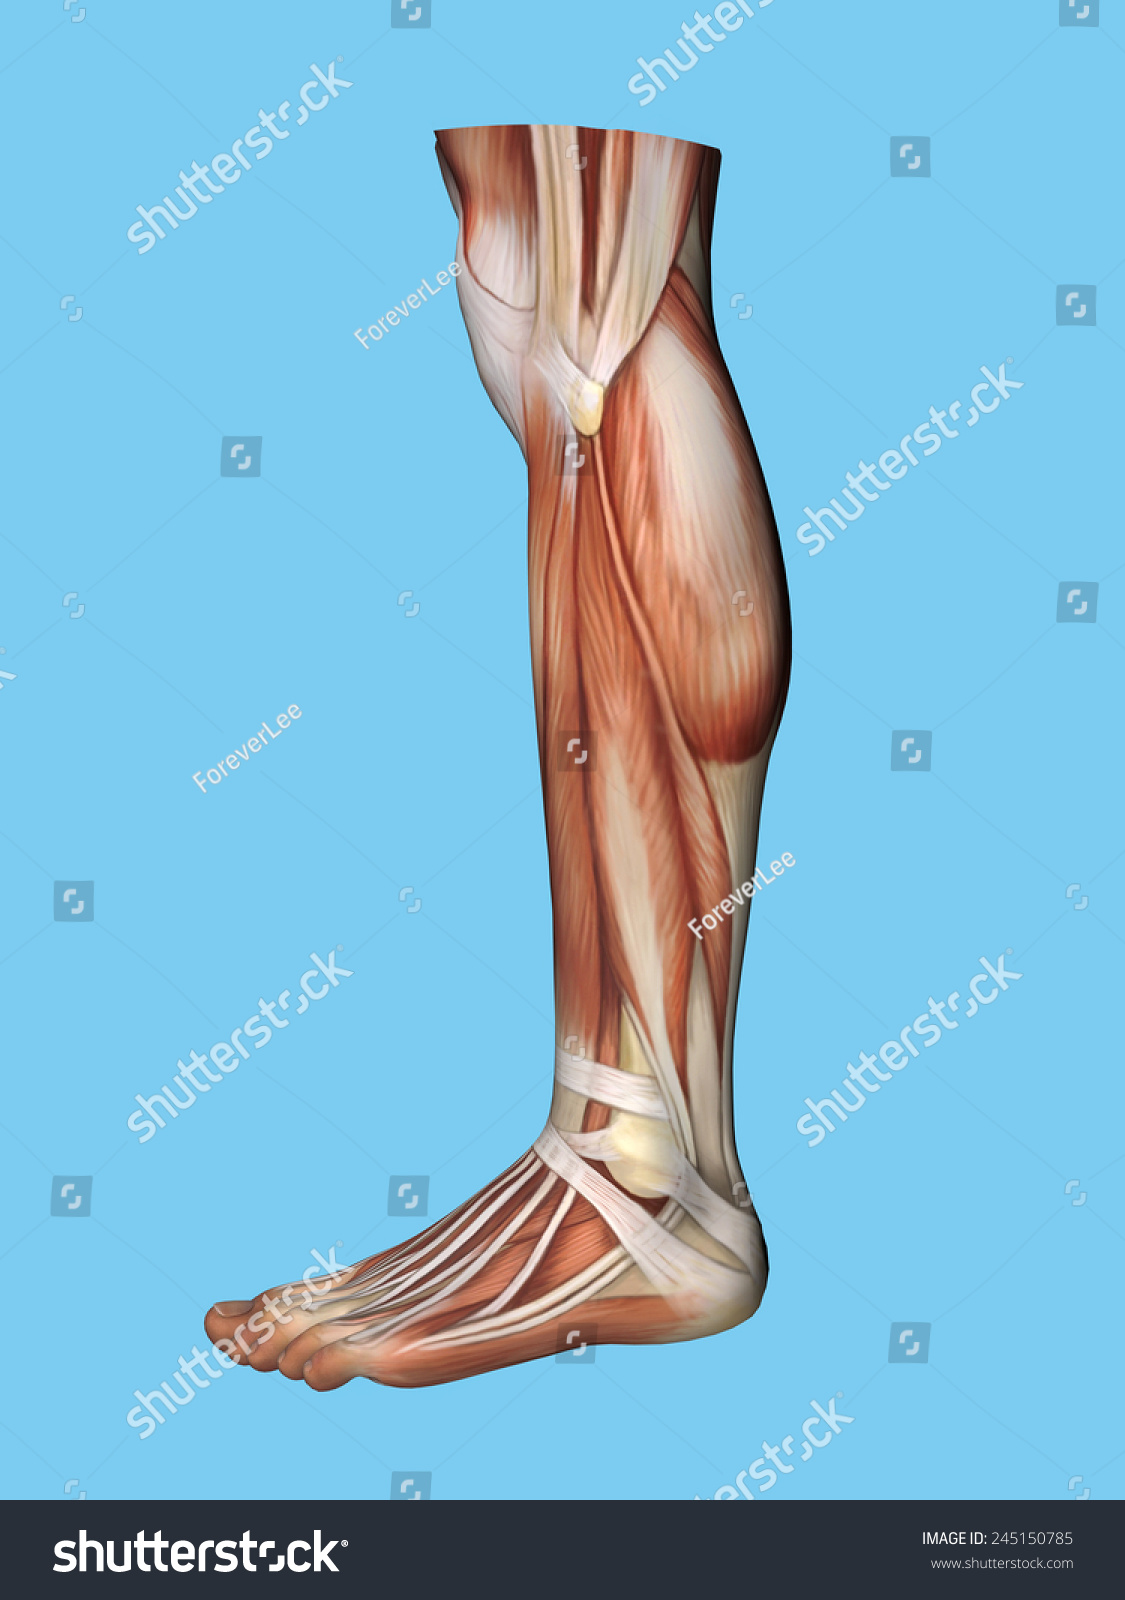 Anatomy Lateral Side View Leg Foot Stock Illustration 245150785 ...